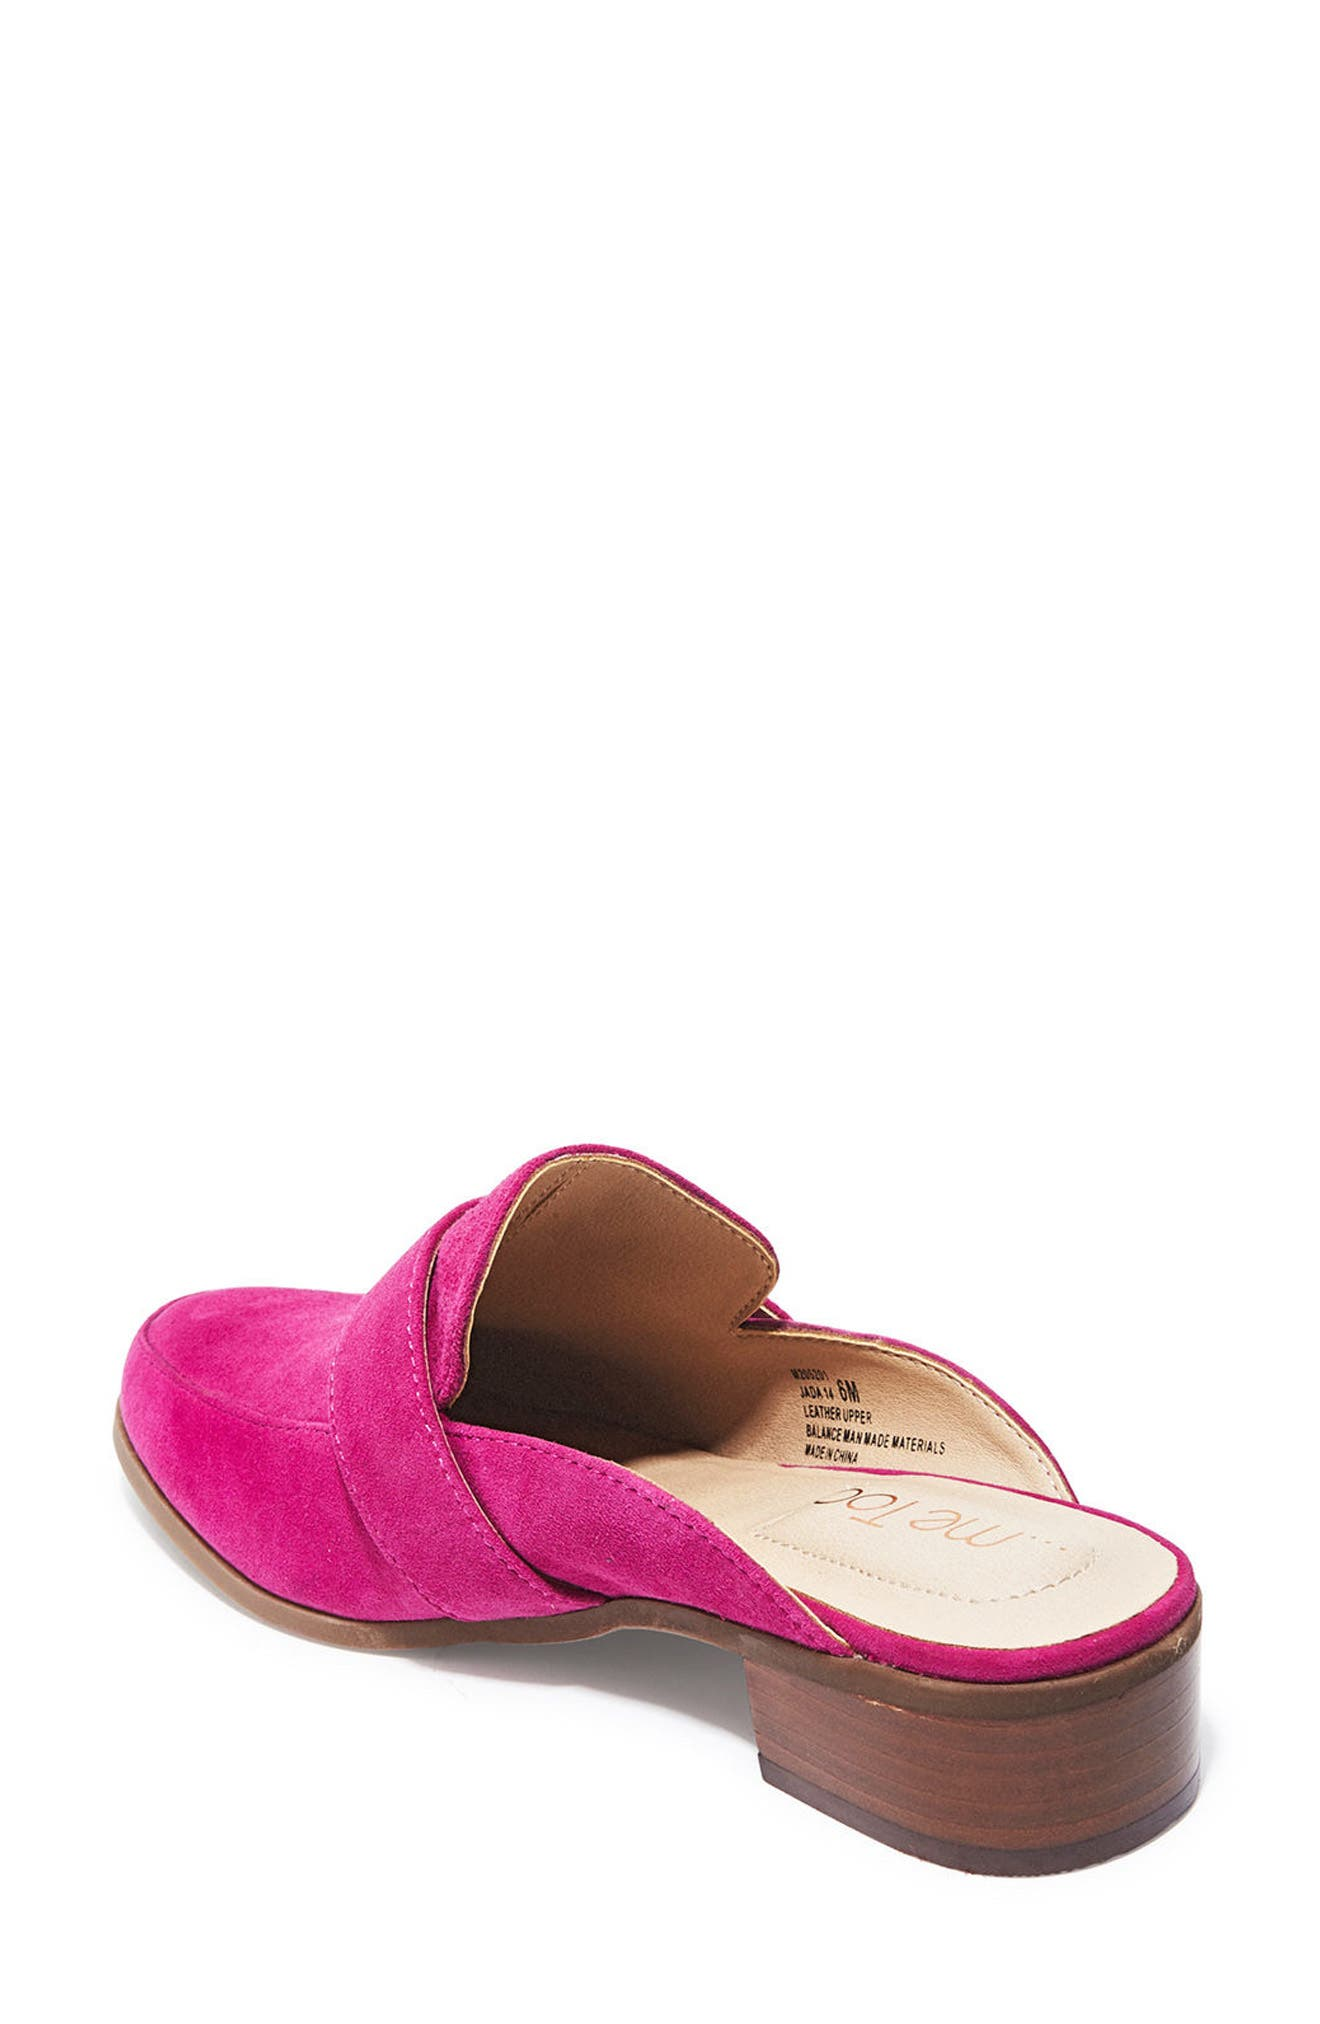 Jada Loafer Mule,                             Alternate thumbnail 2, color,                             Fuchsia Suede